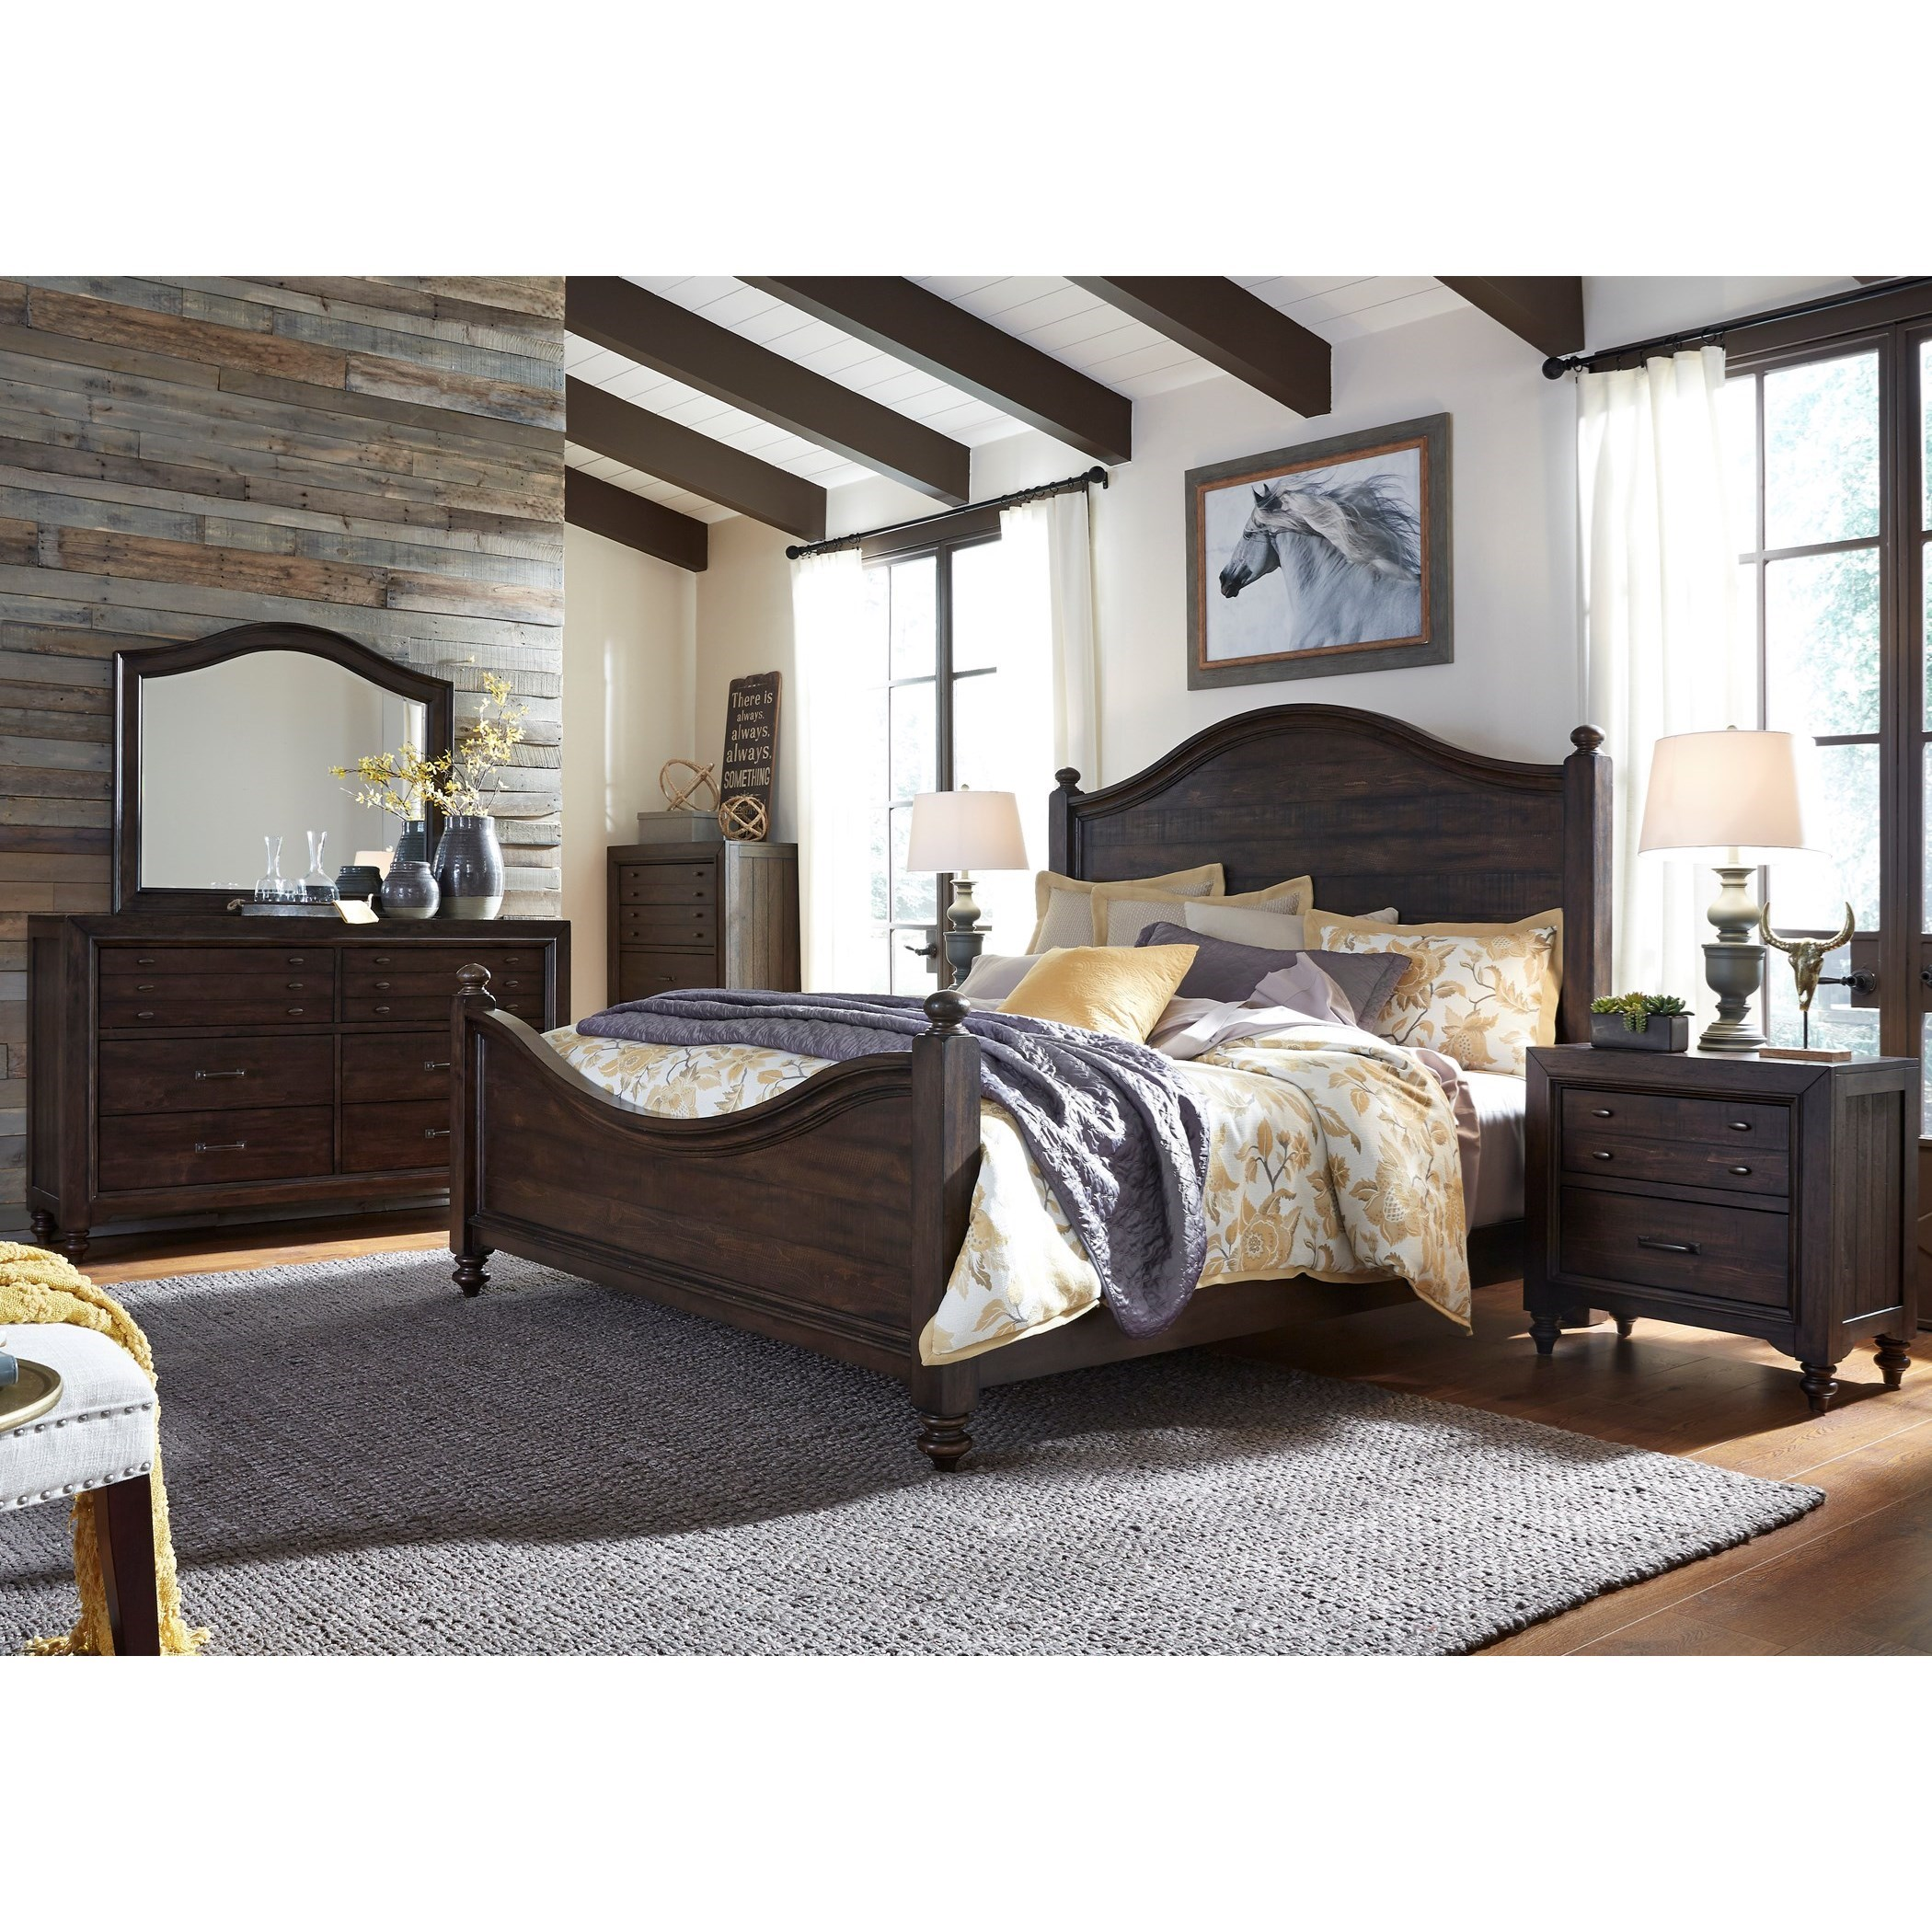 Catawba Hills Bedroom King Poster Bed Bedroom Group by Libby at Walker's Furniture